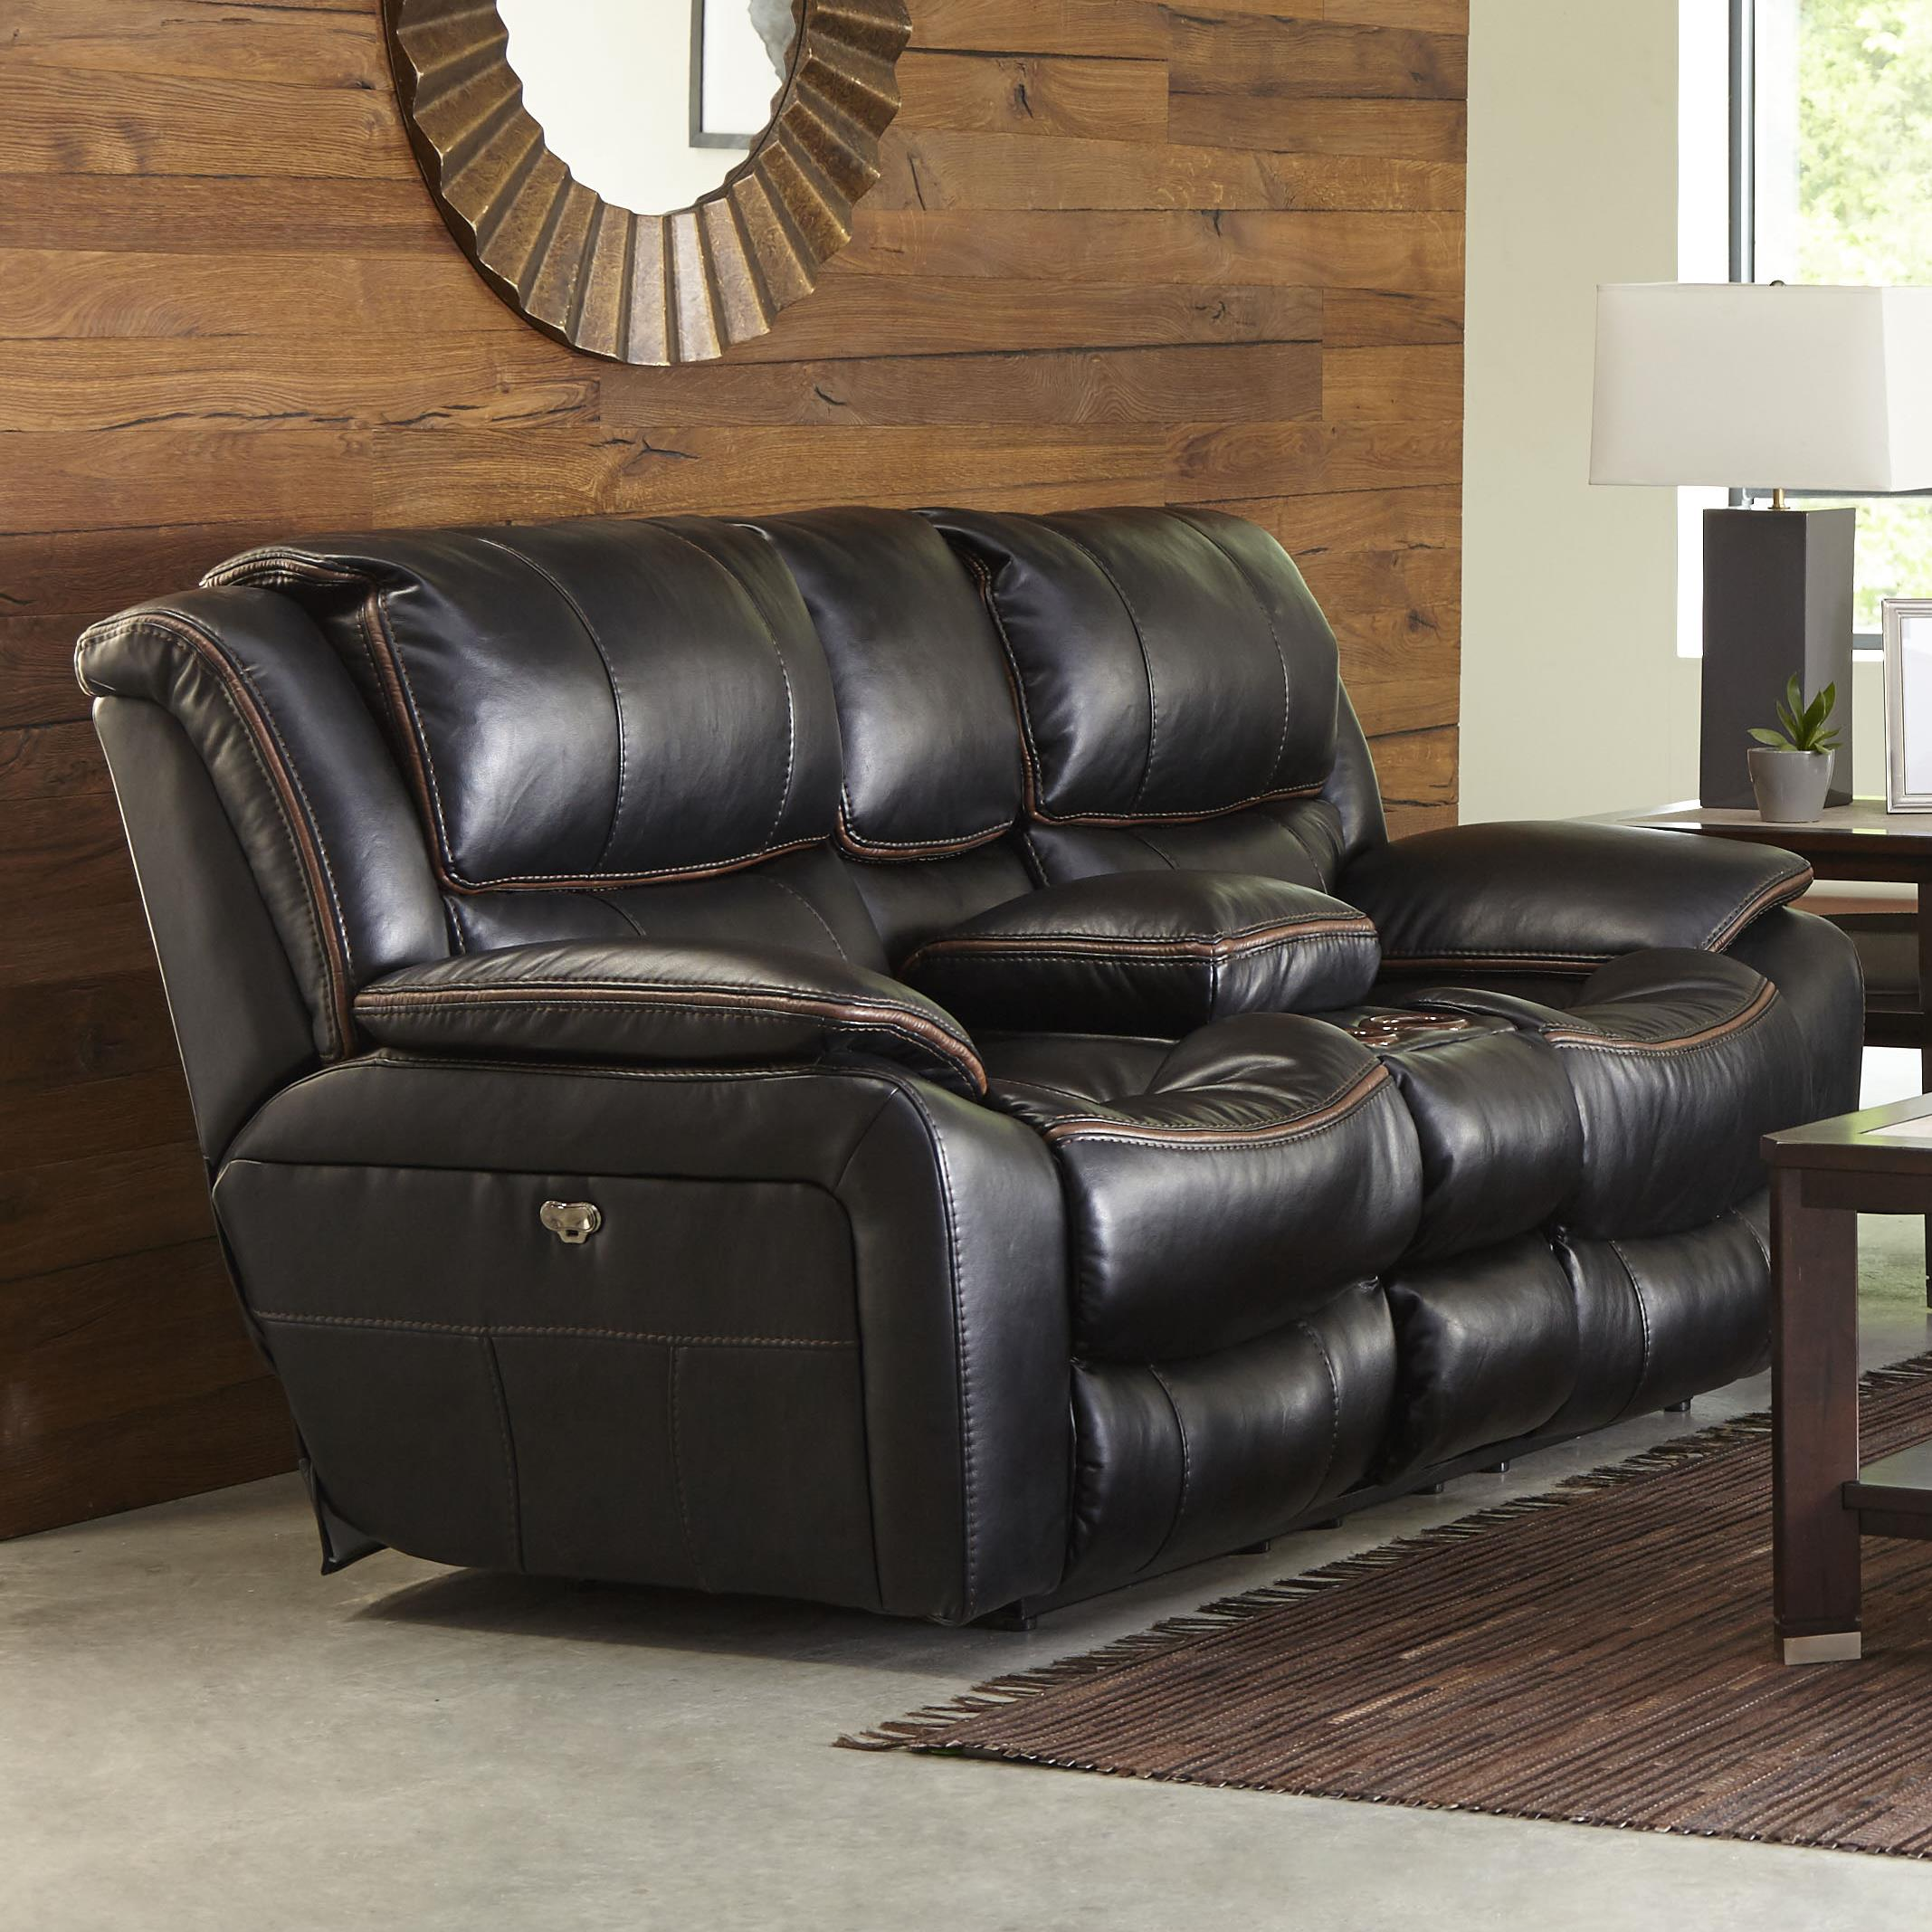 Power Reclining Loveseat With Usb Port Cup Holders And